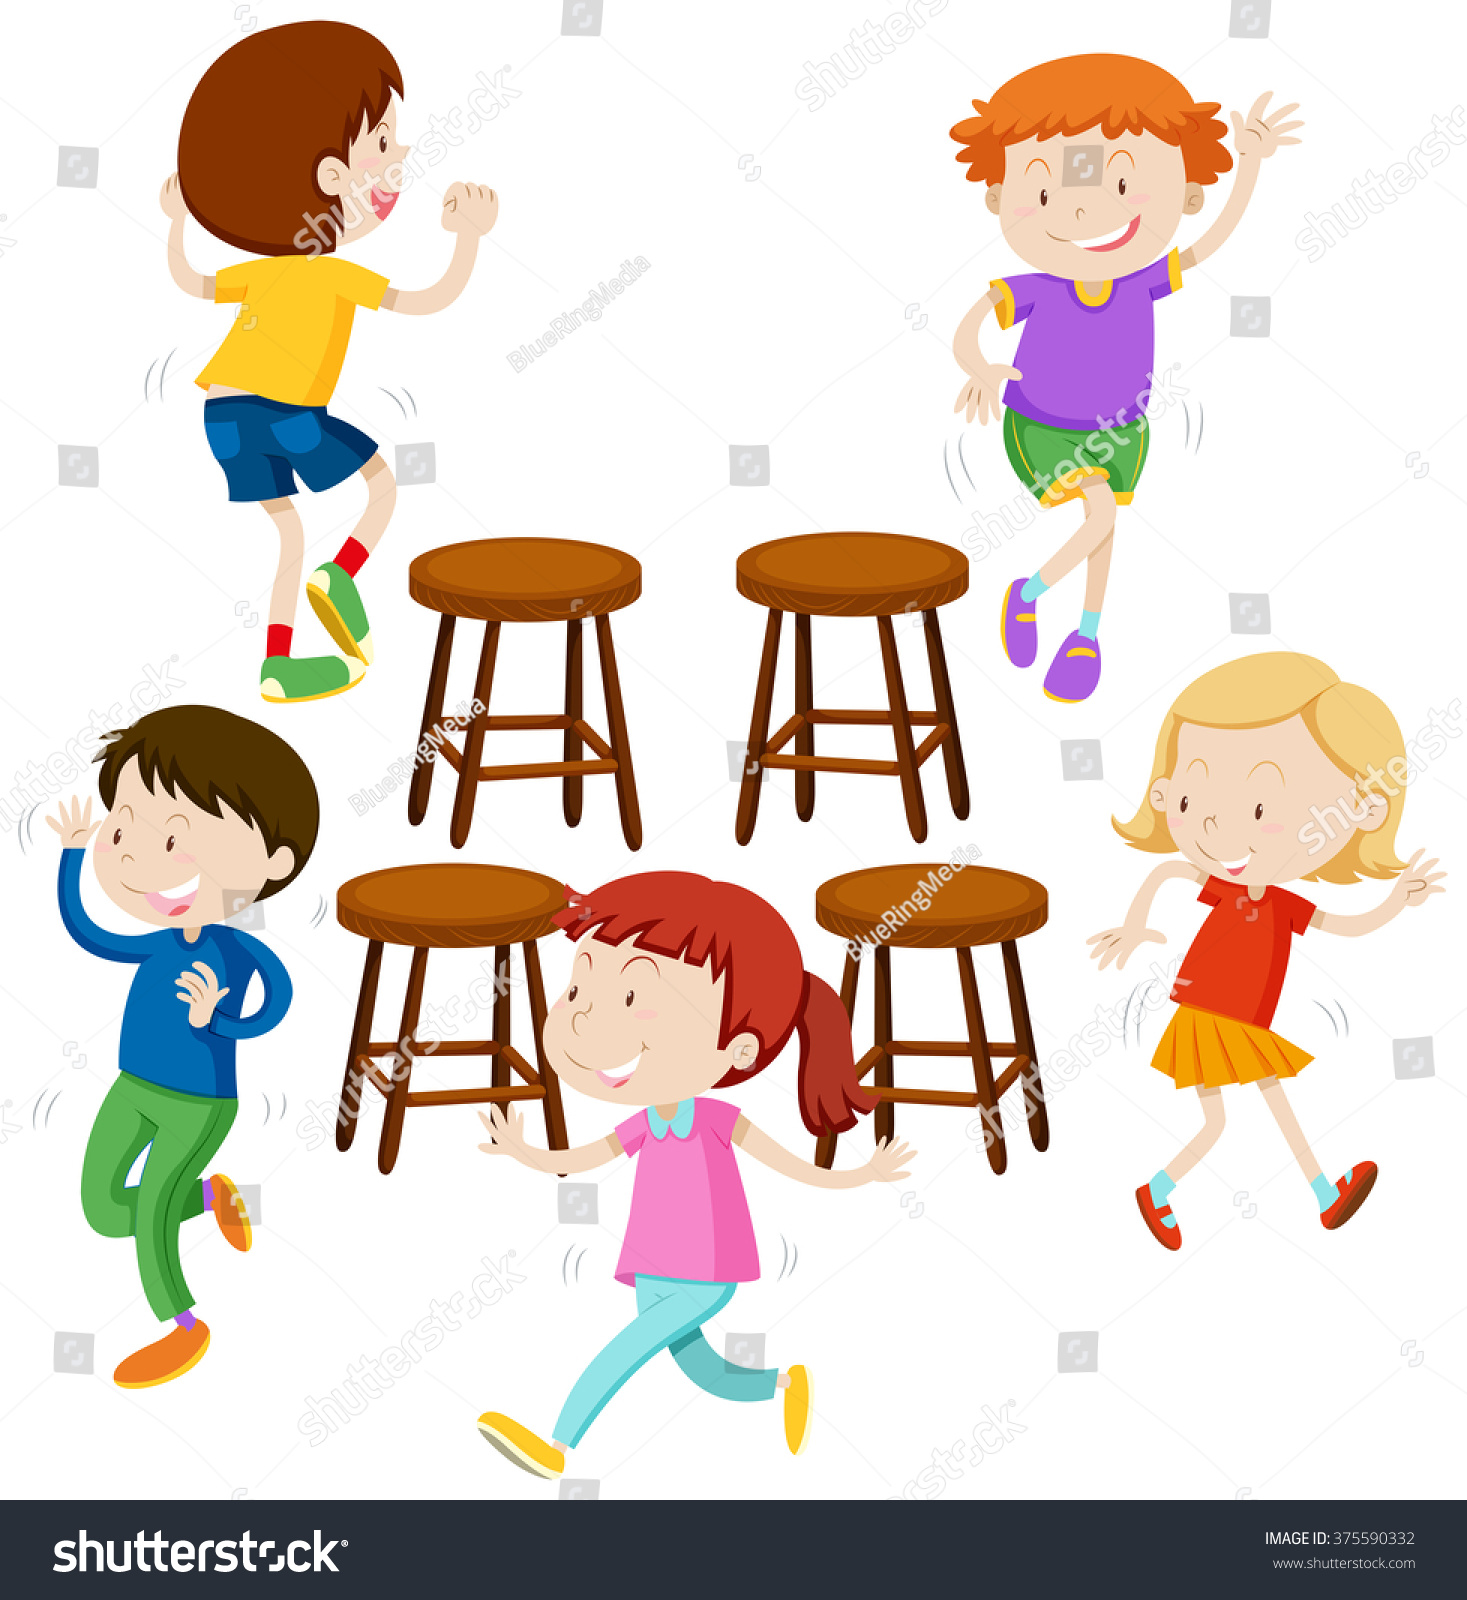 Musical chair game for kids - Children Playing Music Chairs Illustration